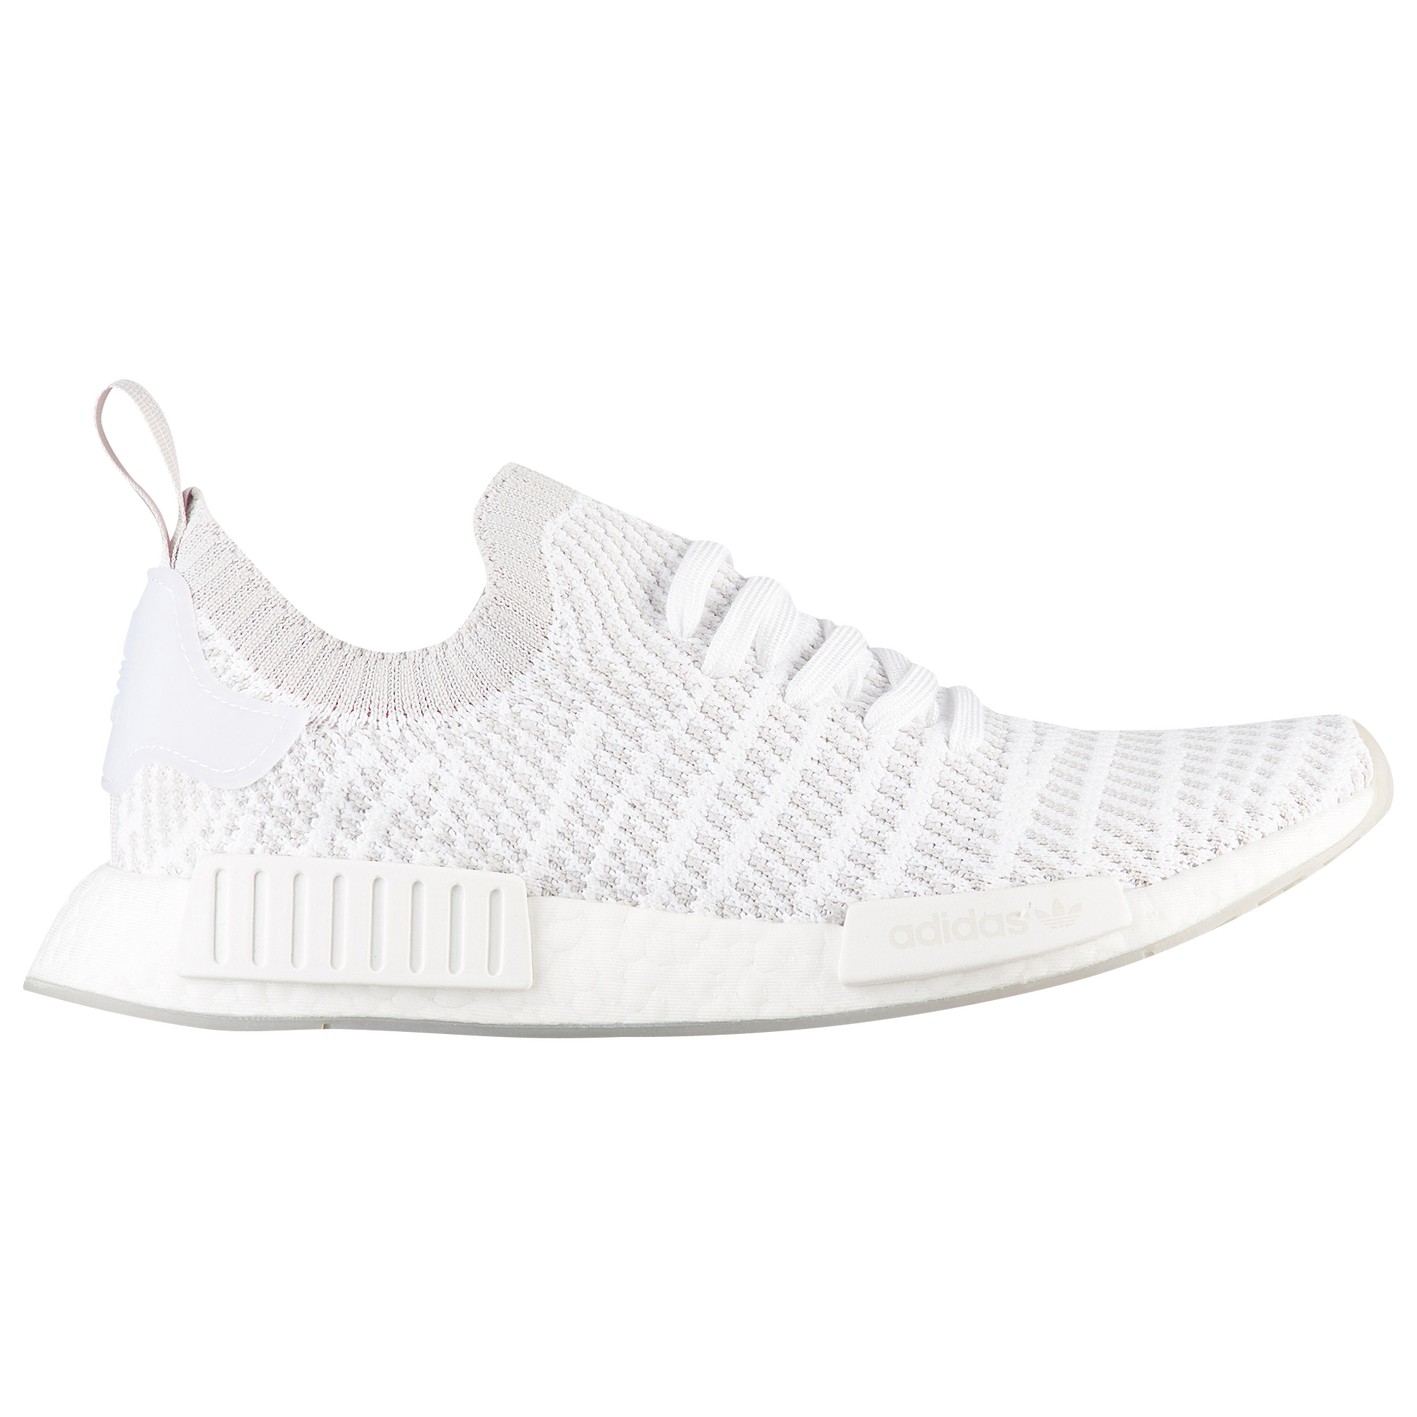 sports shoes f834e 94a1e adidas Originals NMD R1 STLT Primeknit - Men s